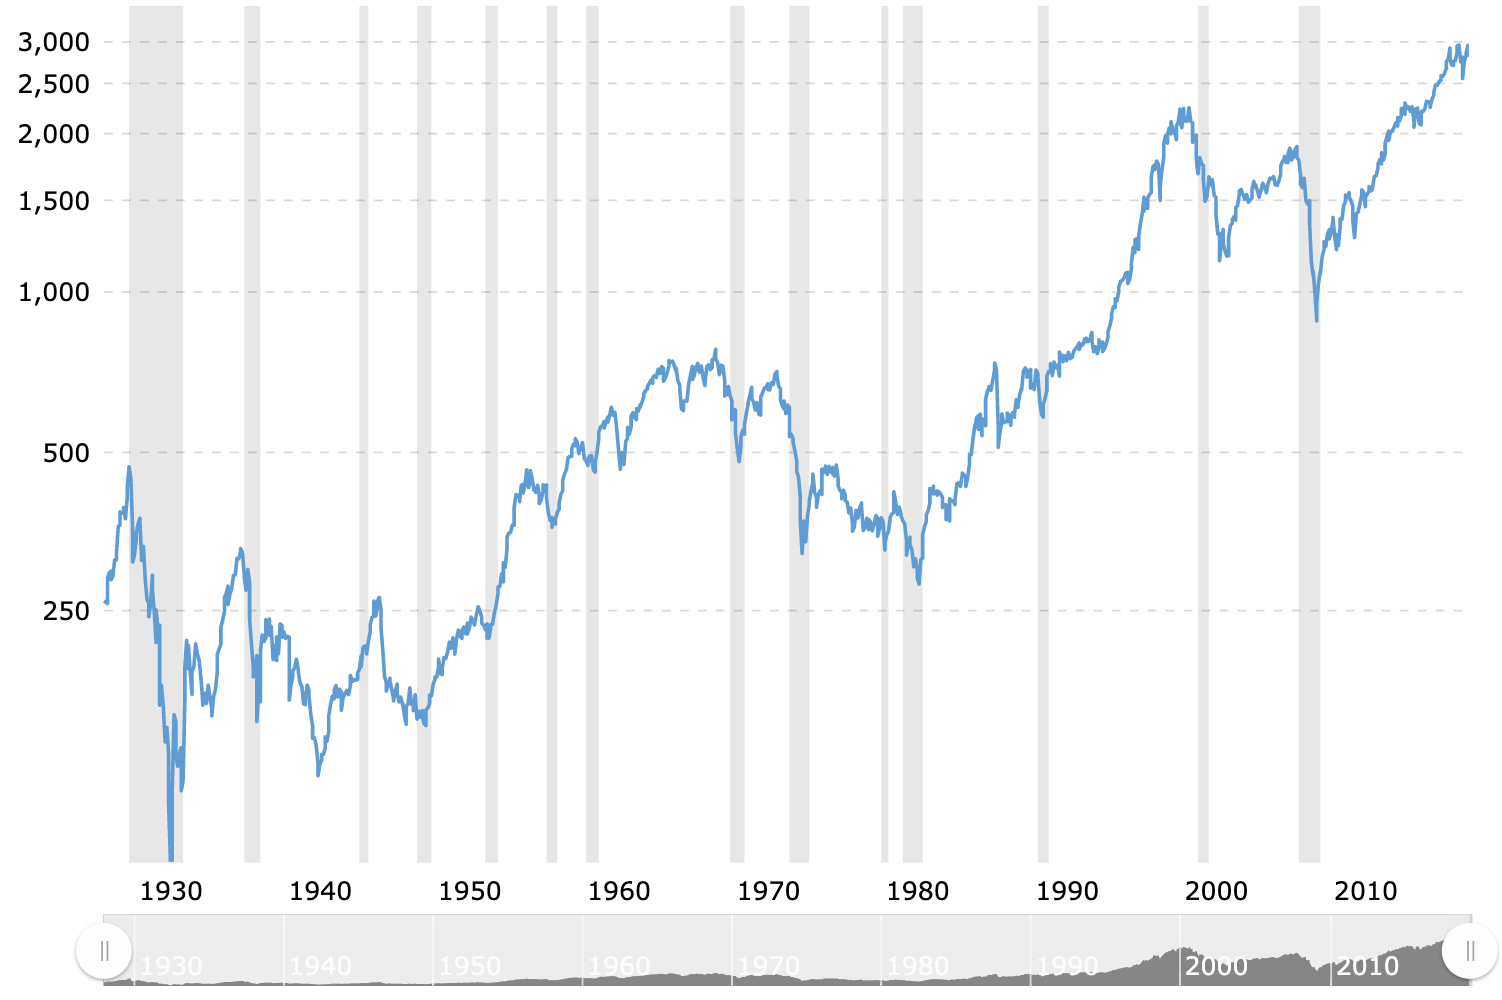 Historical stock performance through 2019